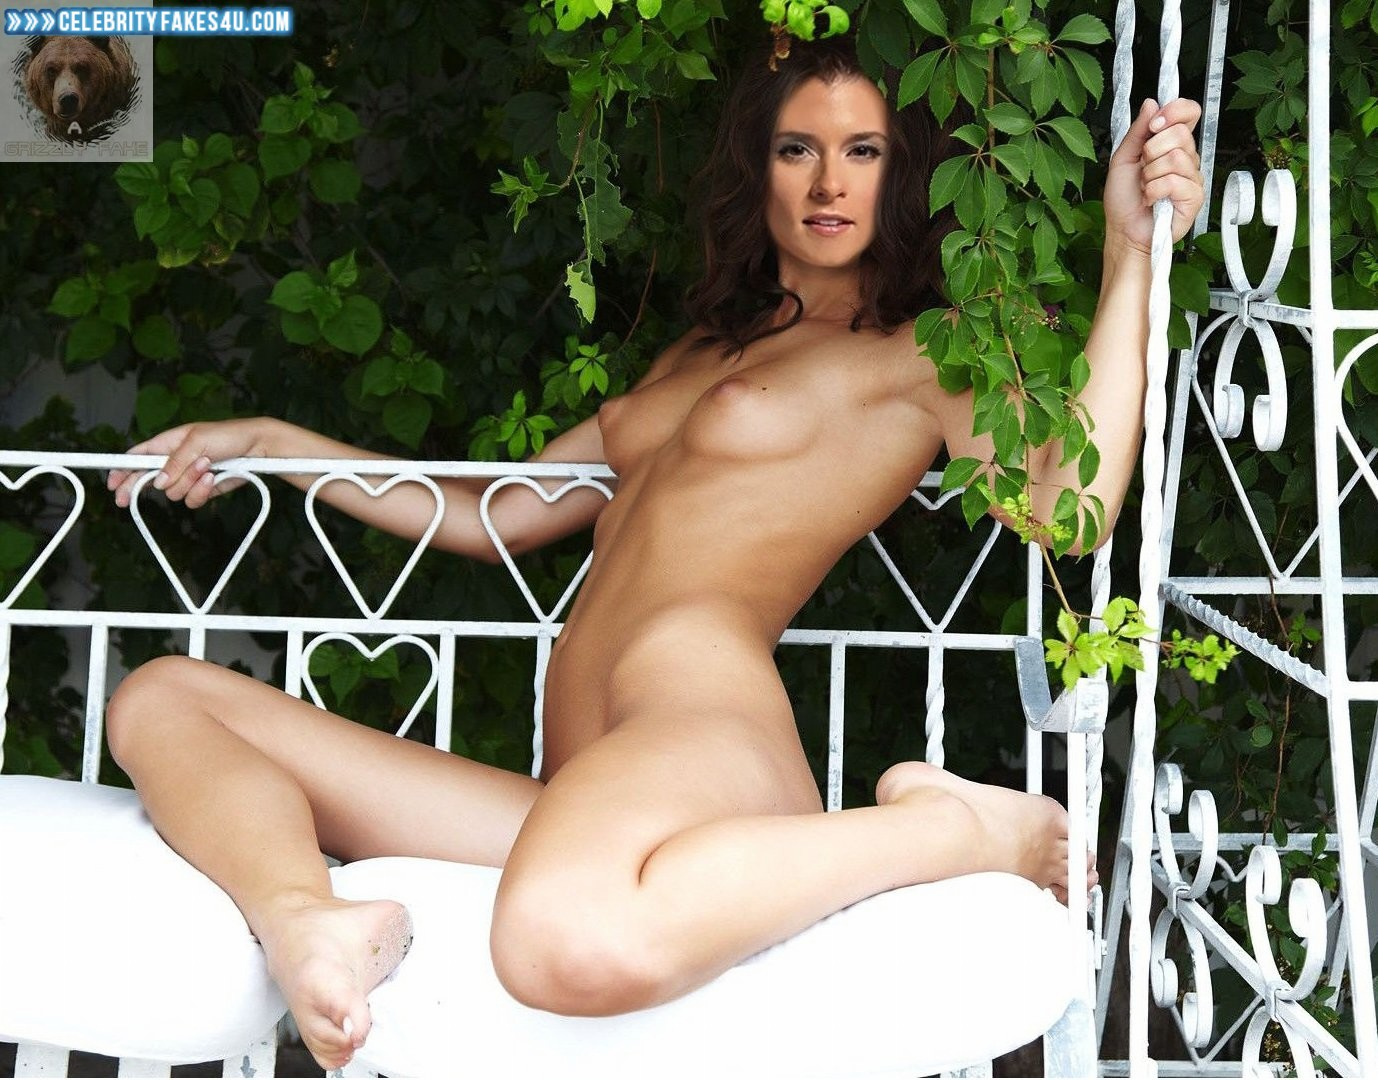 Naked pictures of danica patrick, piss wrestling singlet